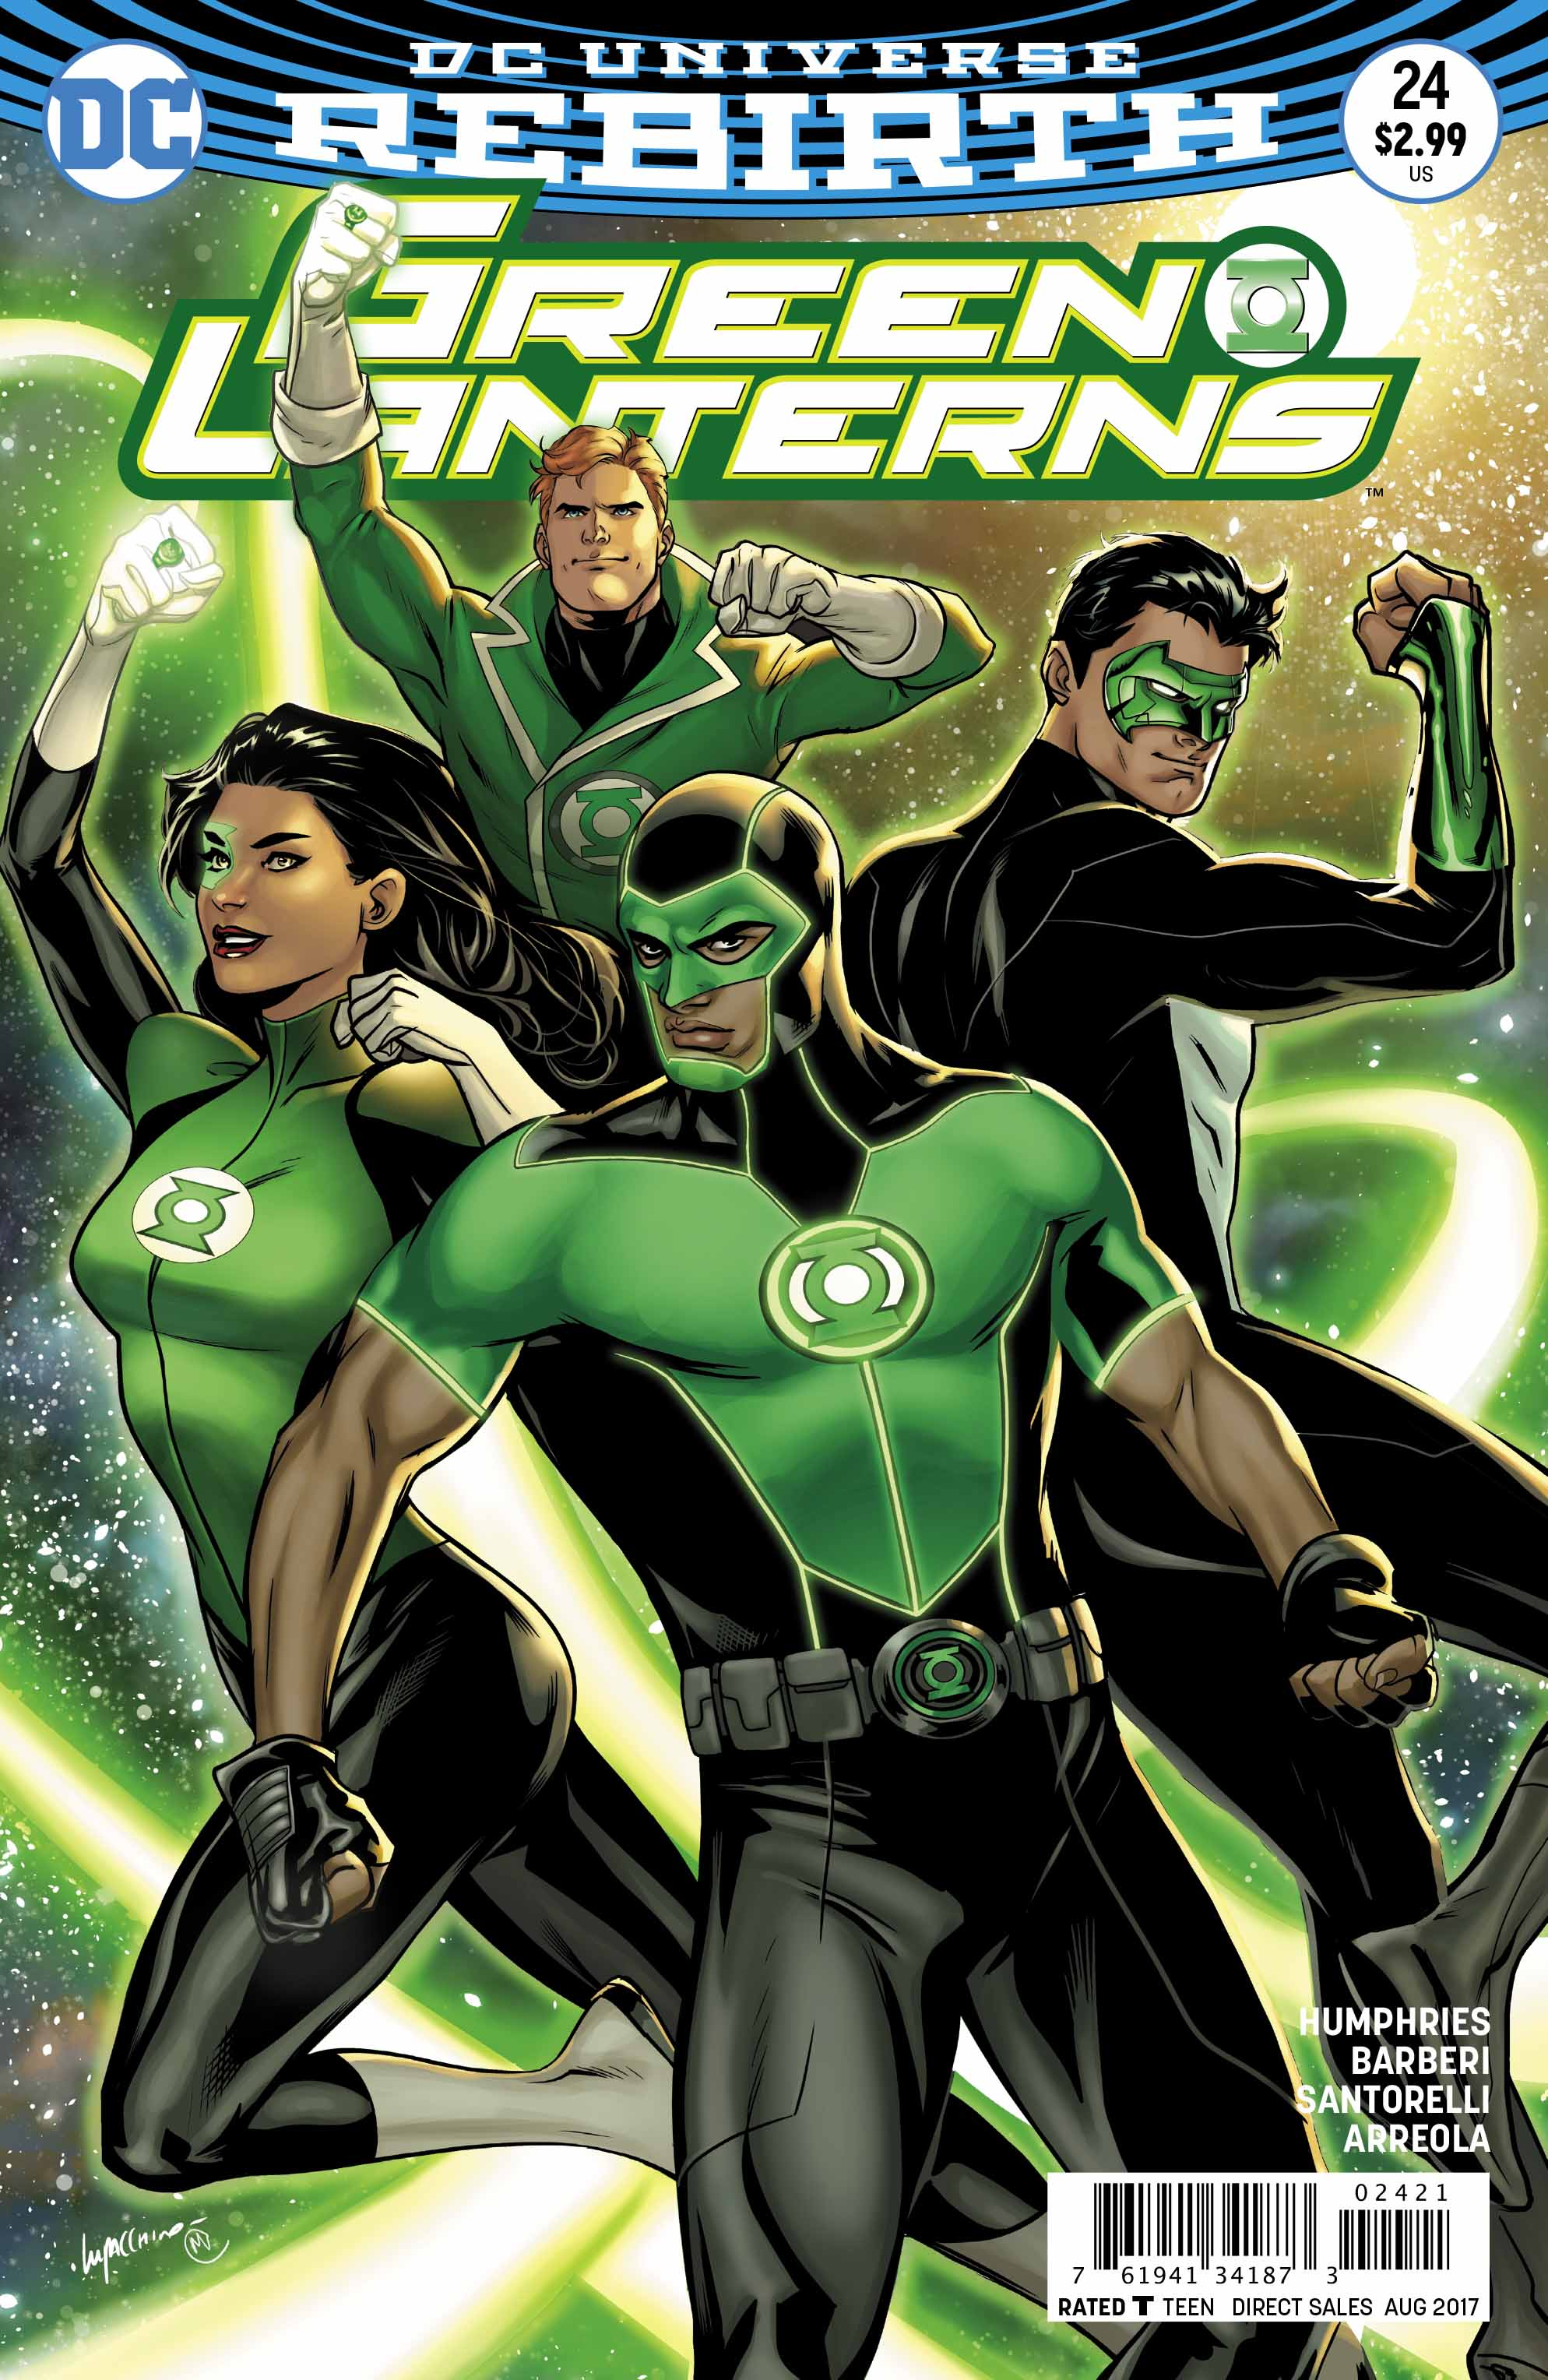 It's just a picture of Ridiculous Pictures of Green Lantern